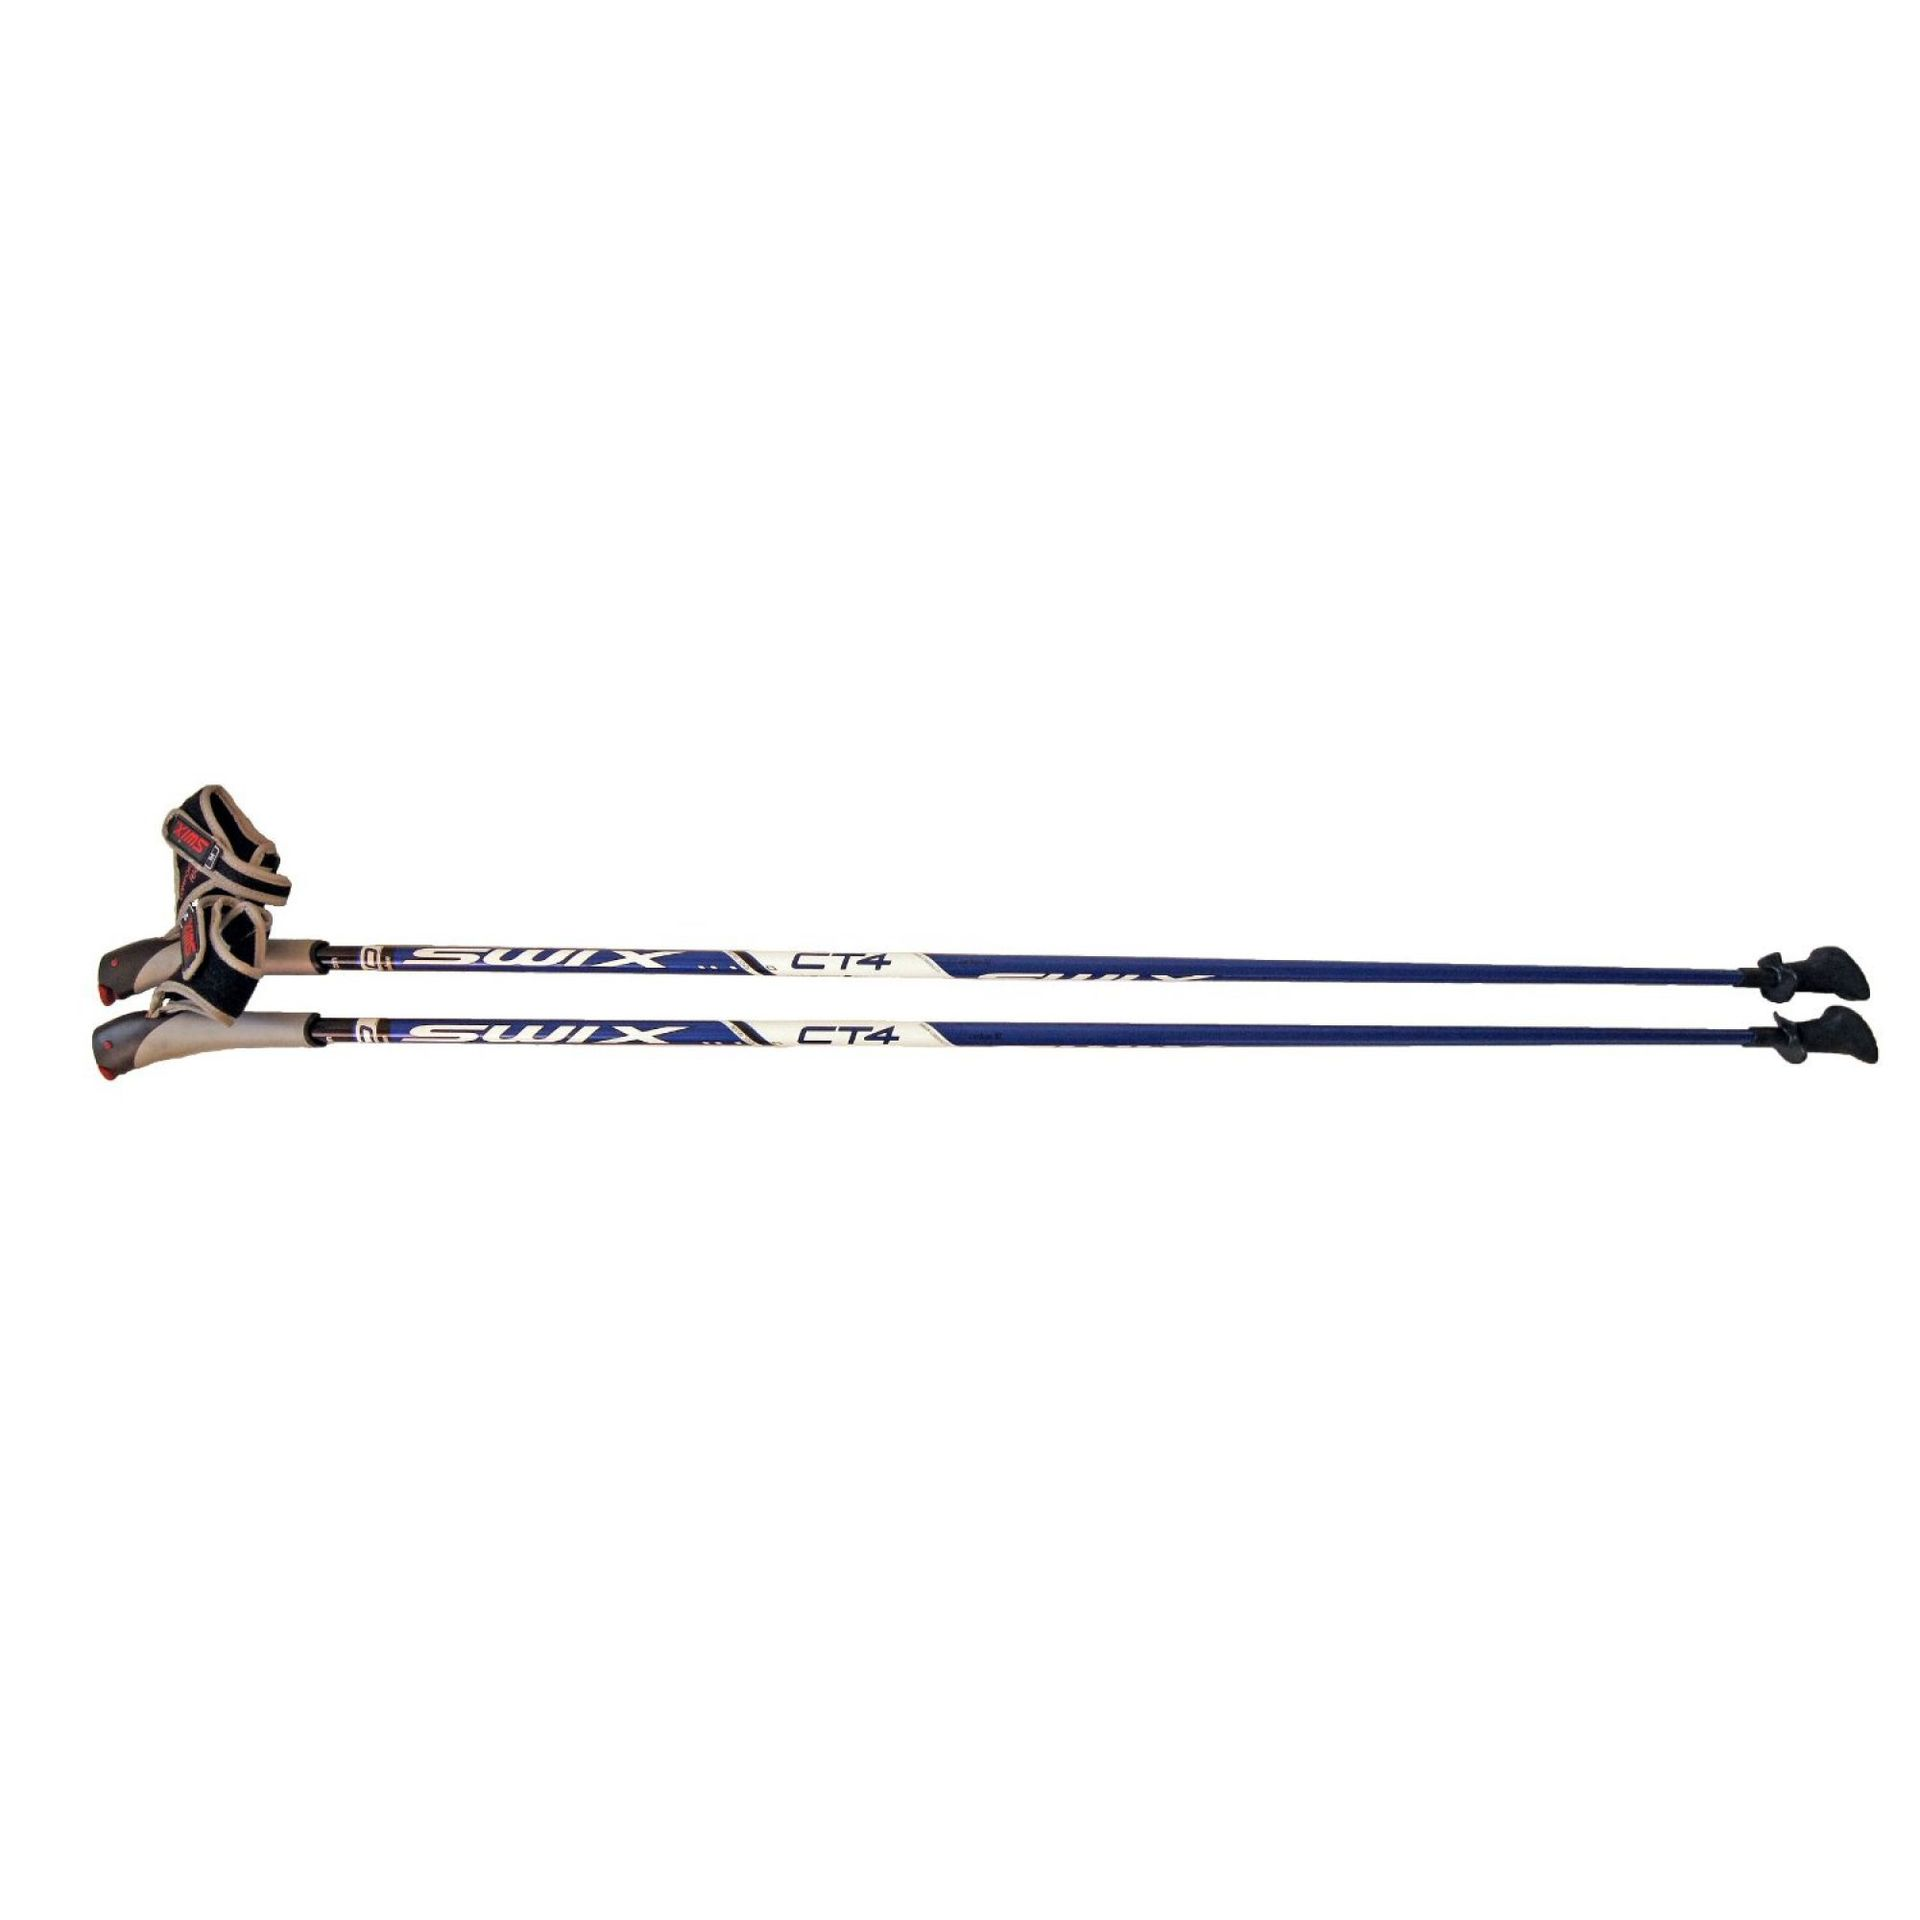 Kije nordic walking Swix CT4